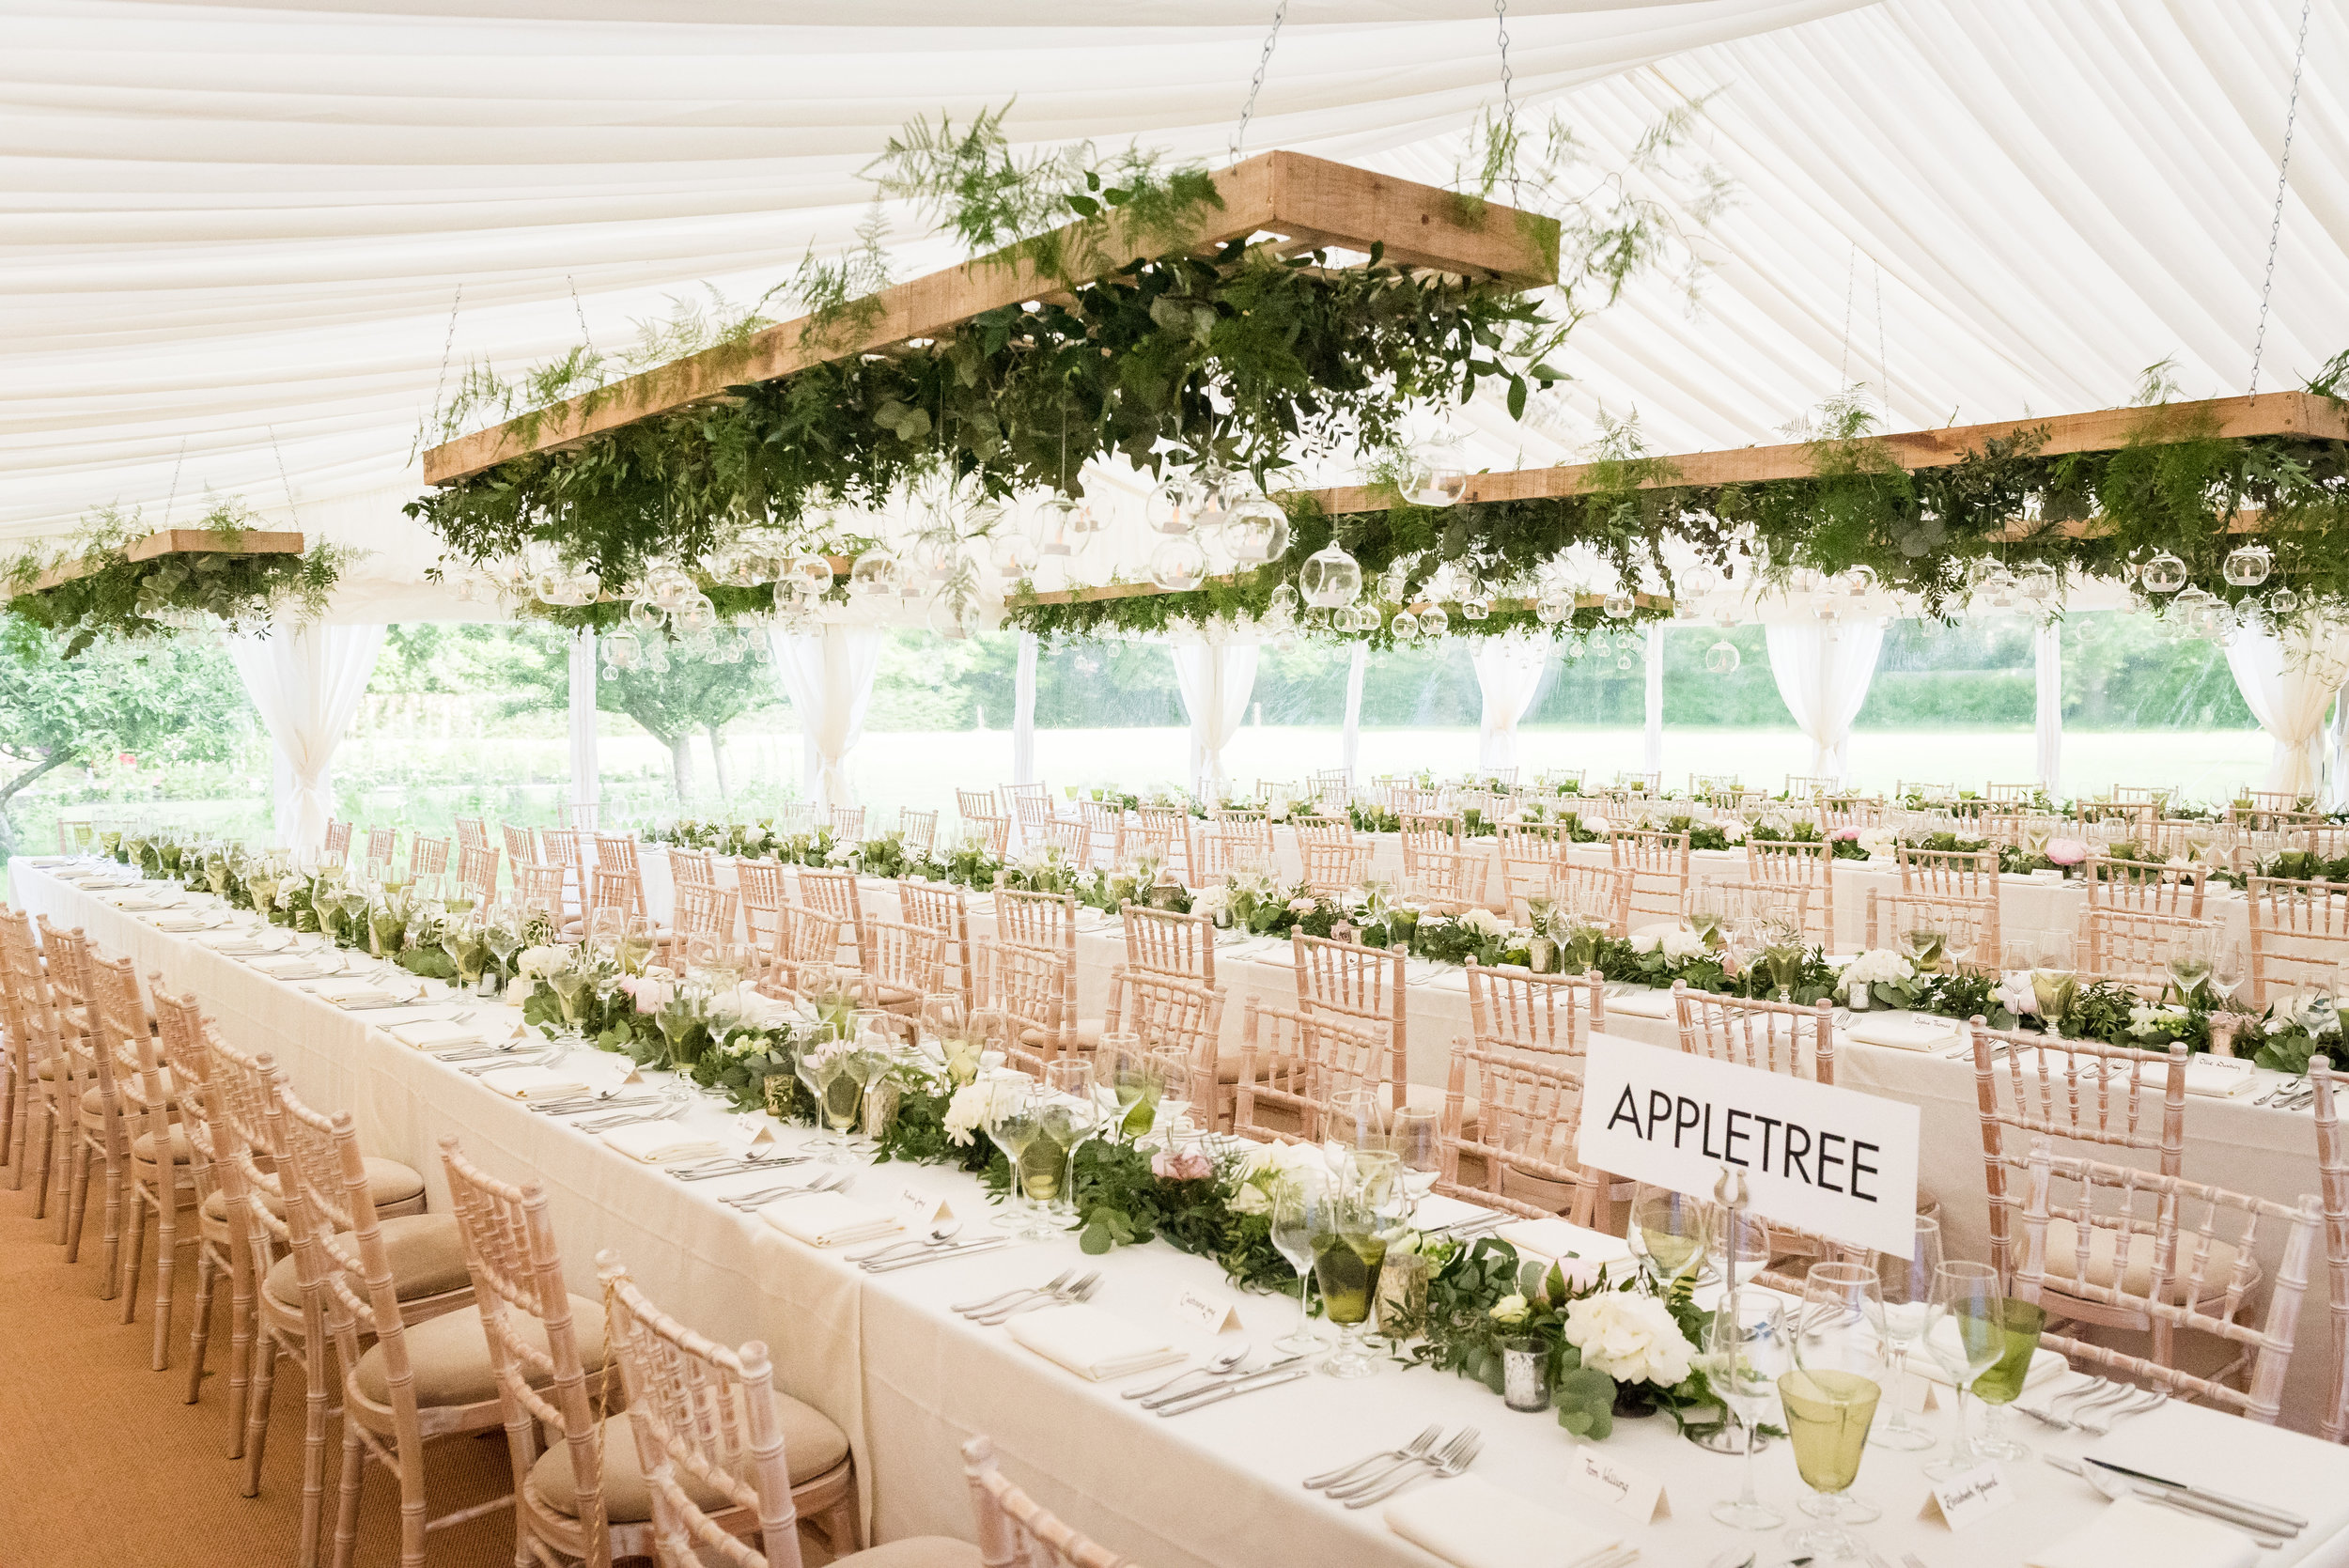 southdowns marquees - www.southdownsmarqueehire.co.uk